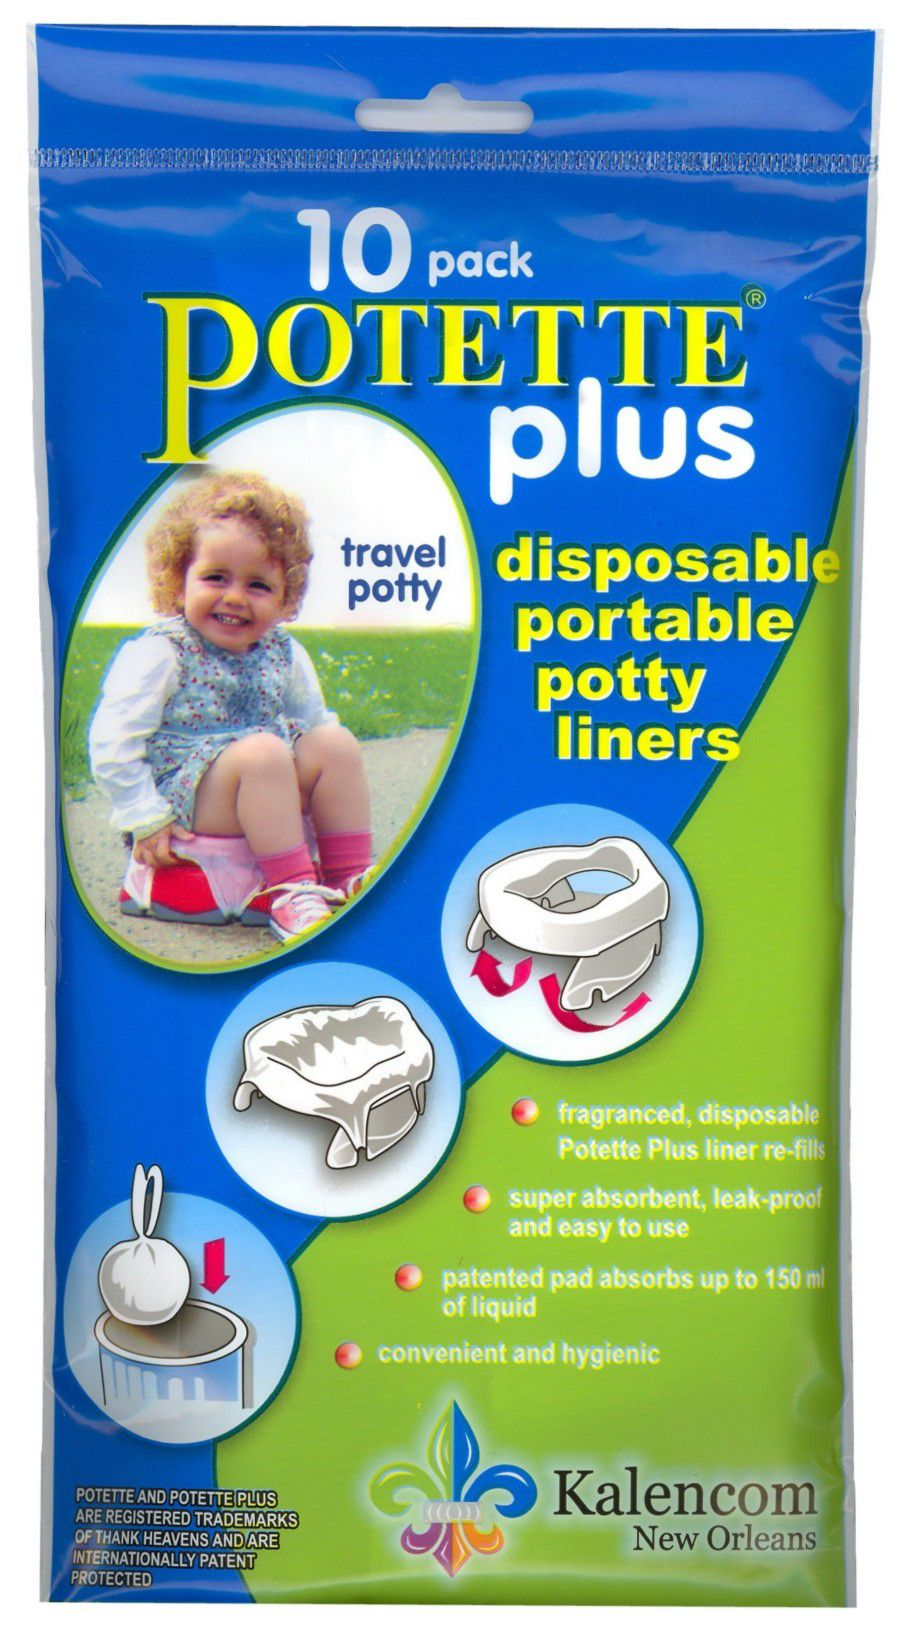 2 in 1 Potette Plus Liners